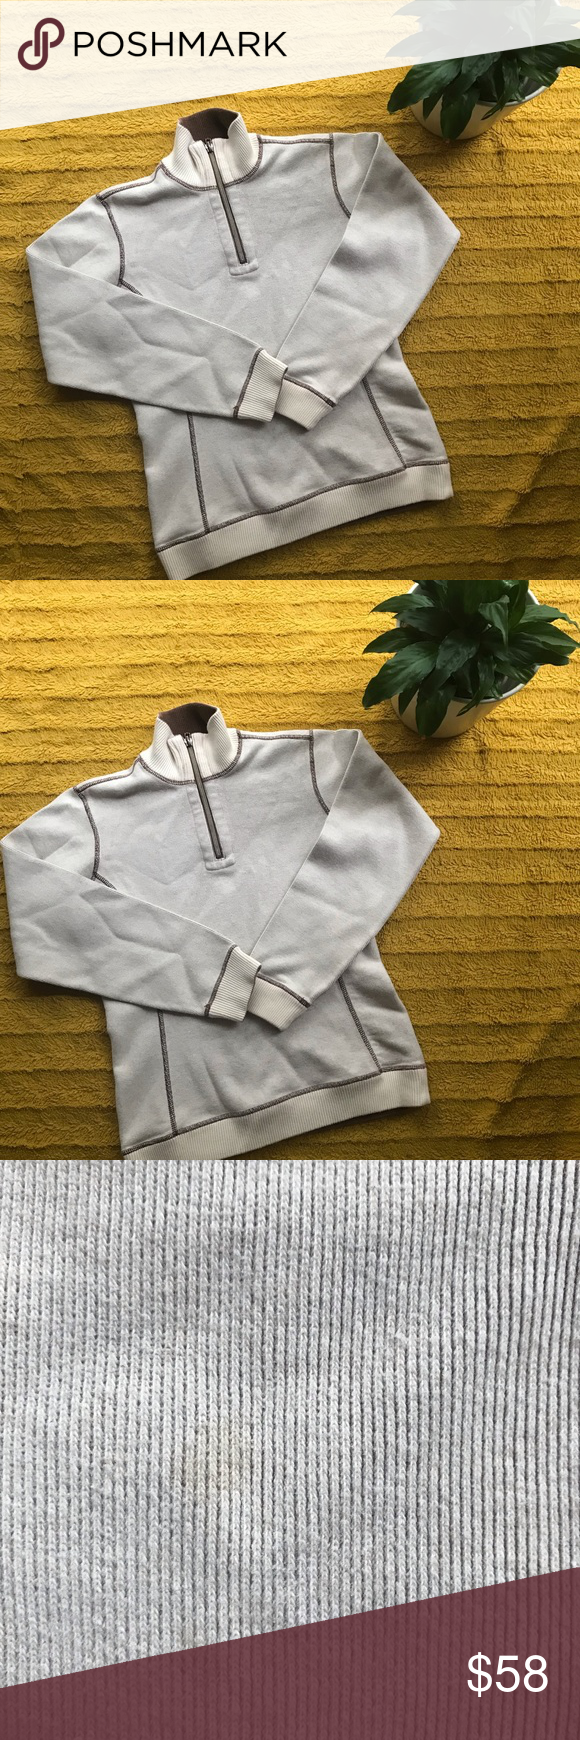 Tommy Bahama Quarter Zip Sweater Size 4 6 S M Tommy Bahama Quarter Zip Sweater Size 4 6 Or S M Two Quarter Zip Sweater Tommy Bahama Shirts Sweater Sizes